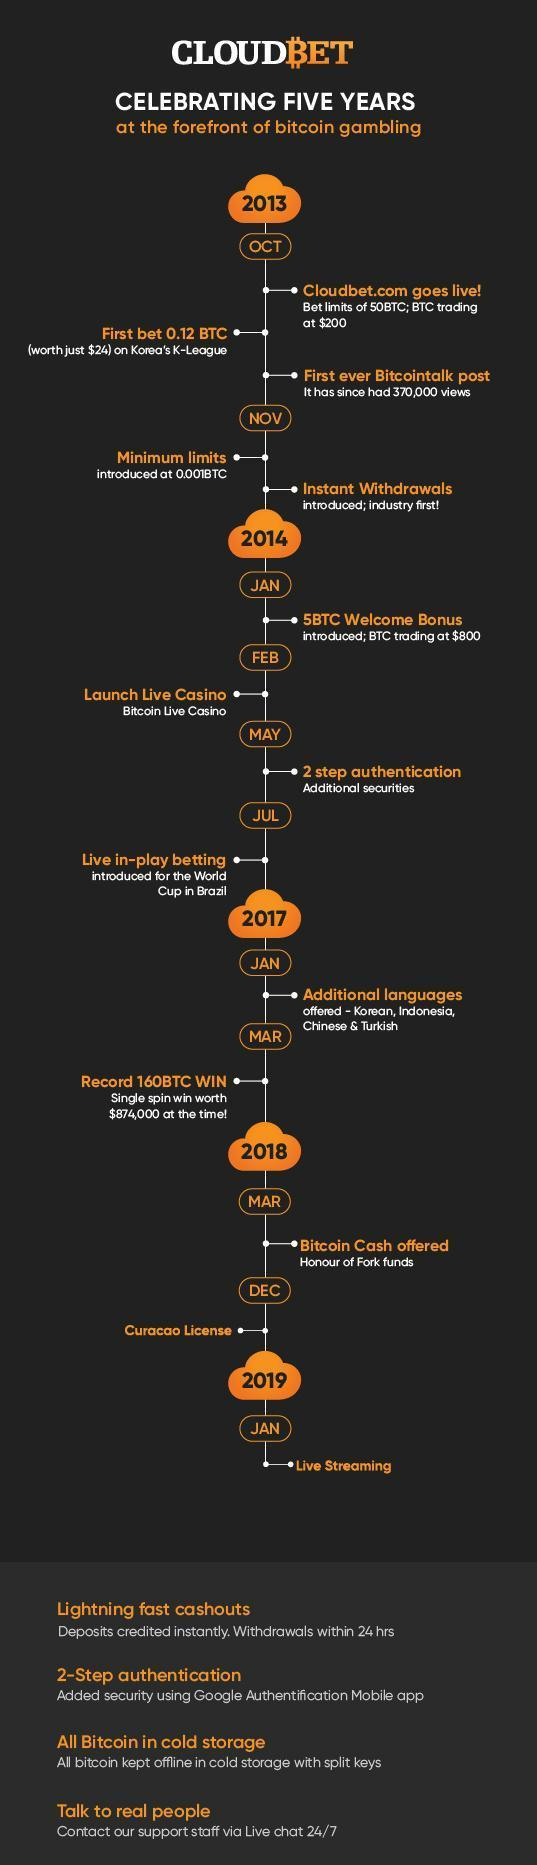 Cloudbet Timeline Infographic